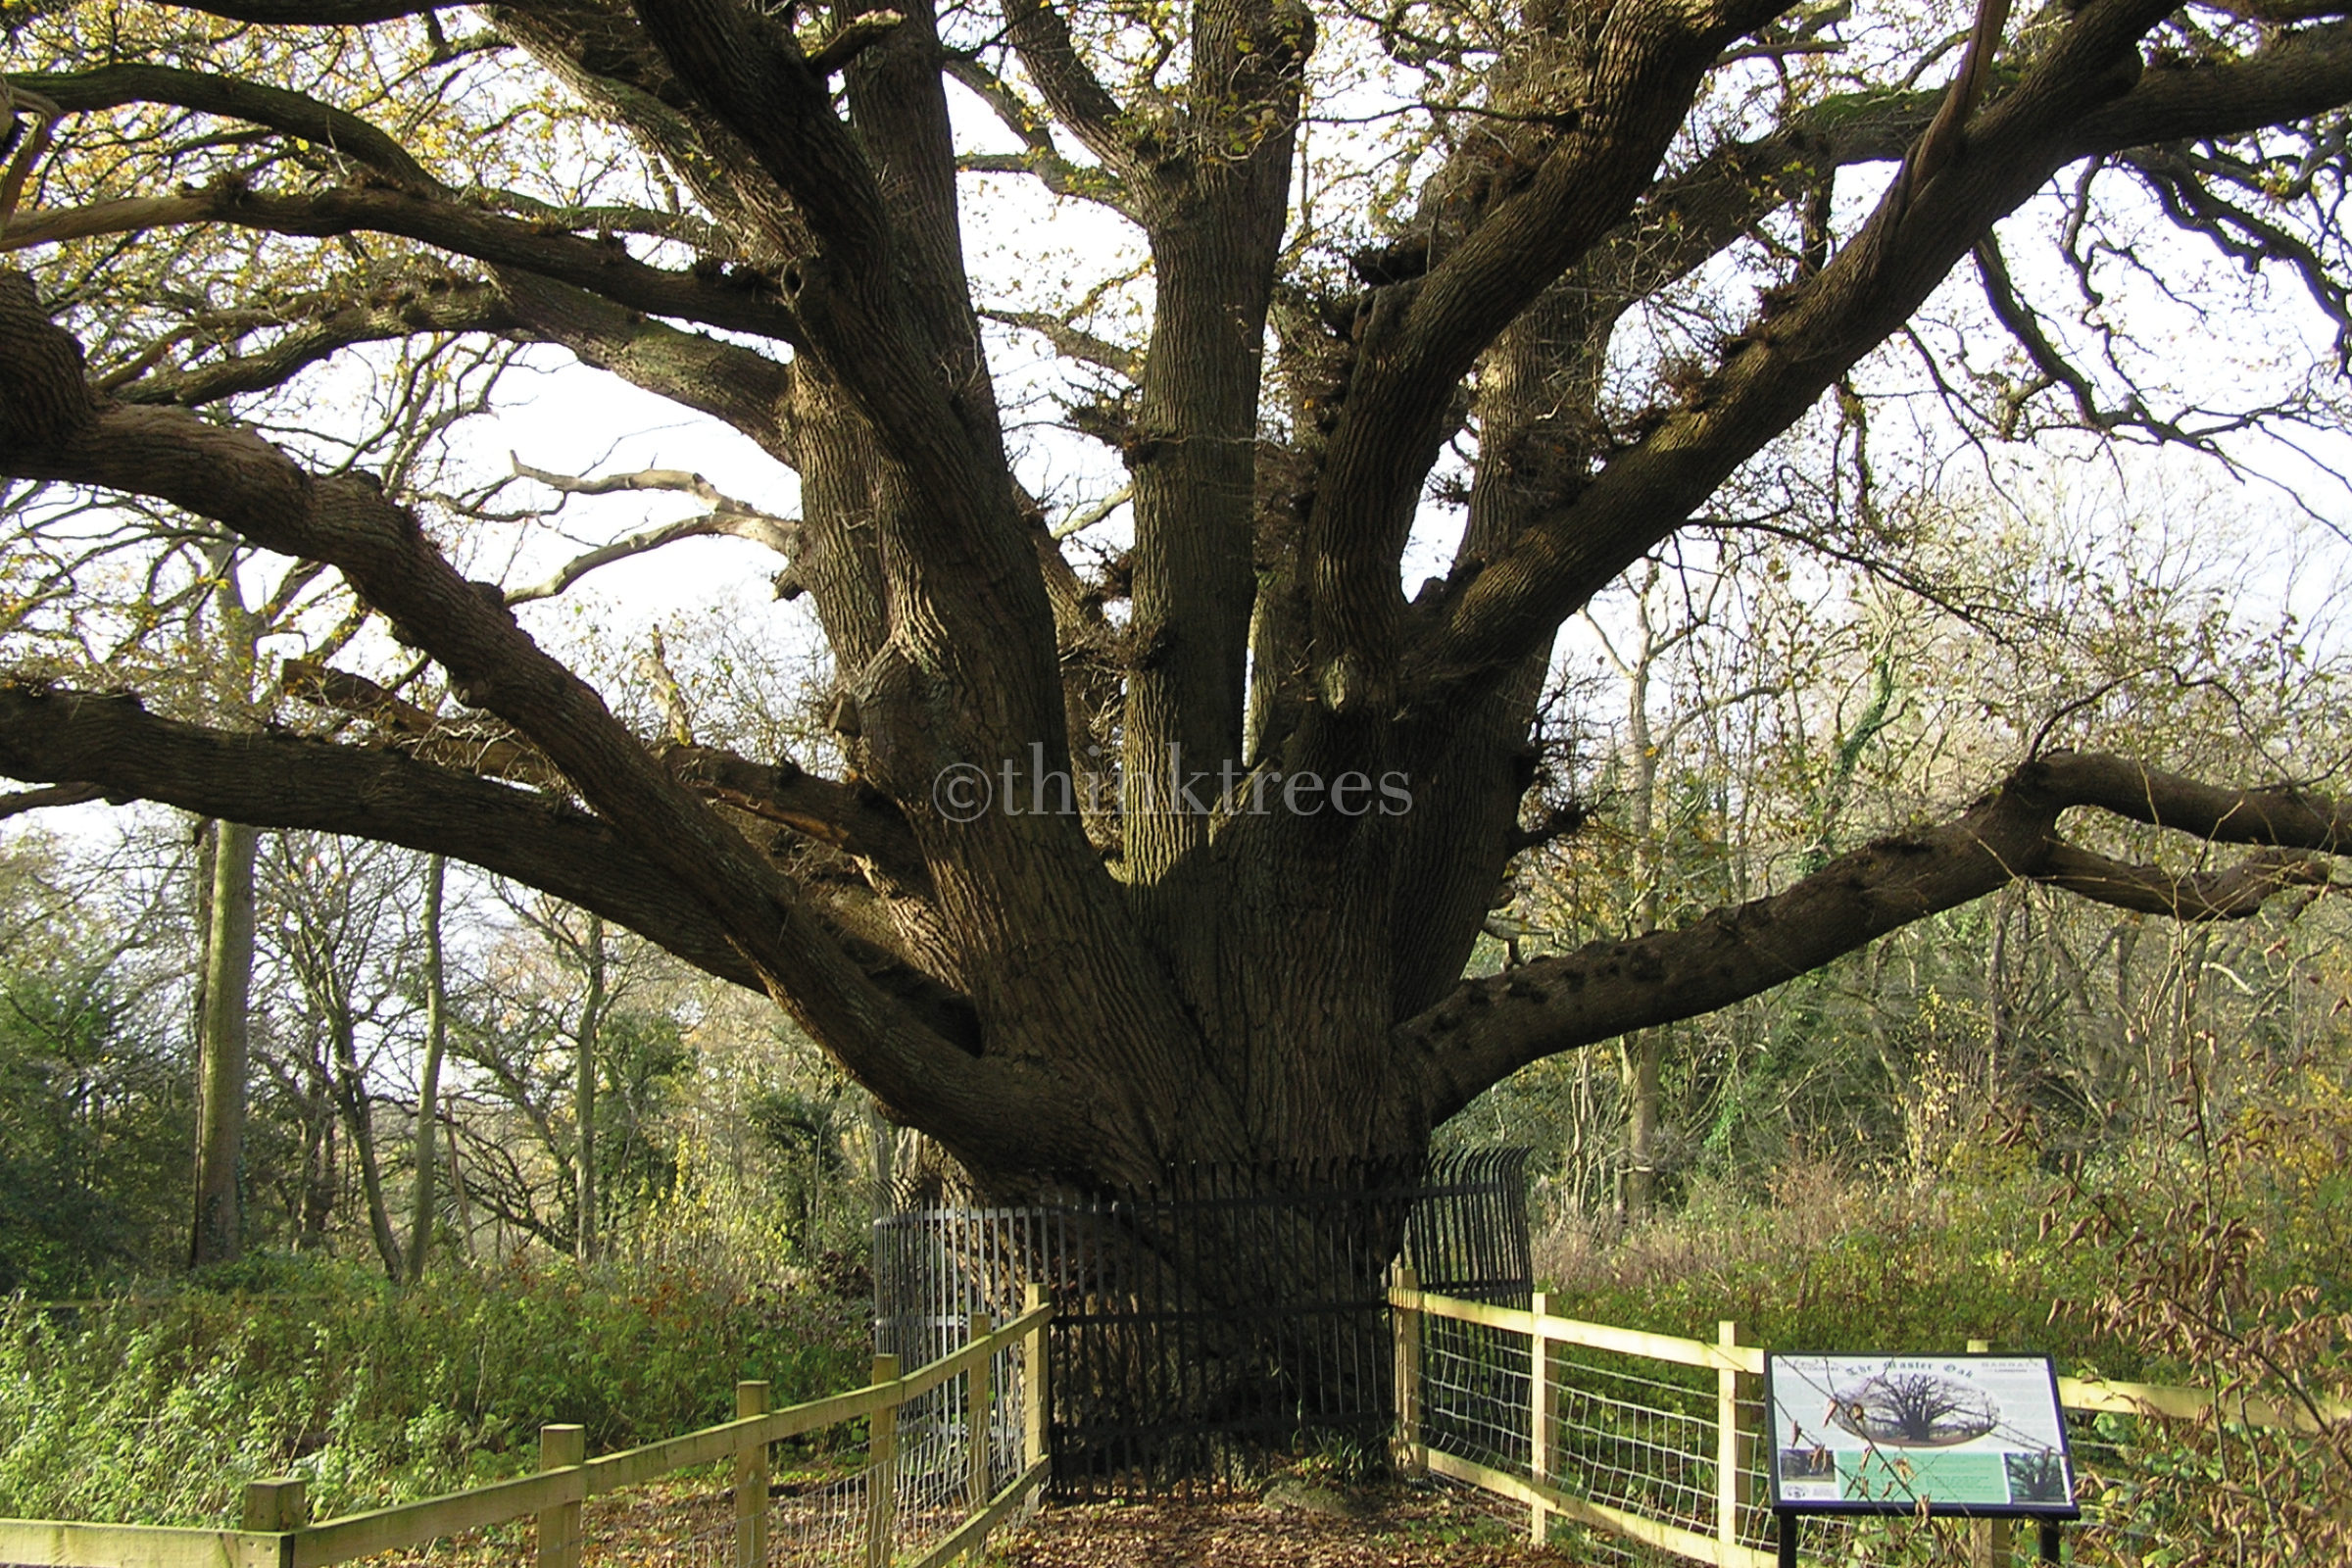 The enormous trunk of the ancient oak at Bentley Priory